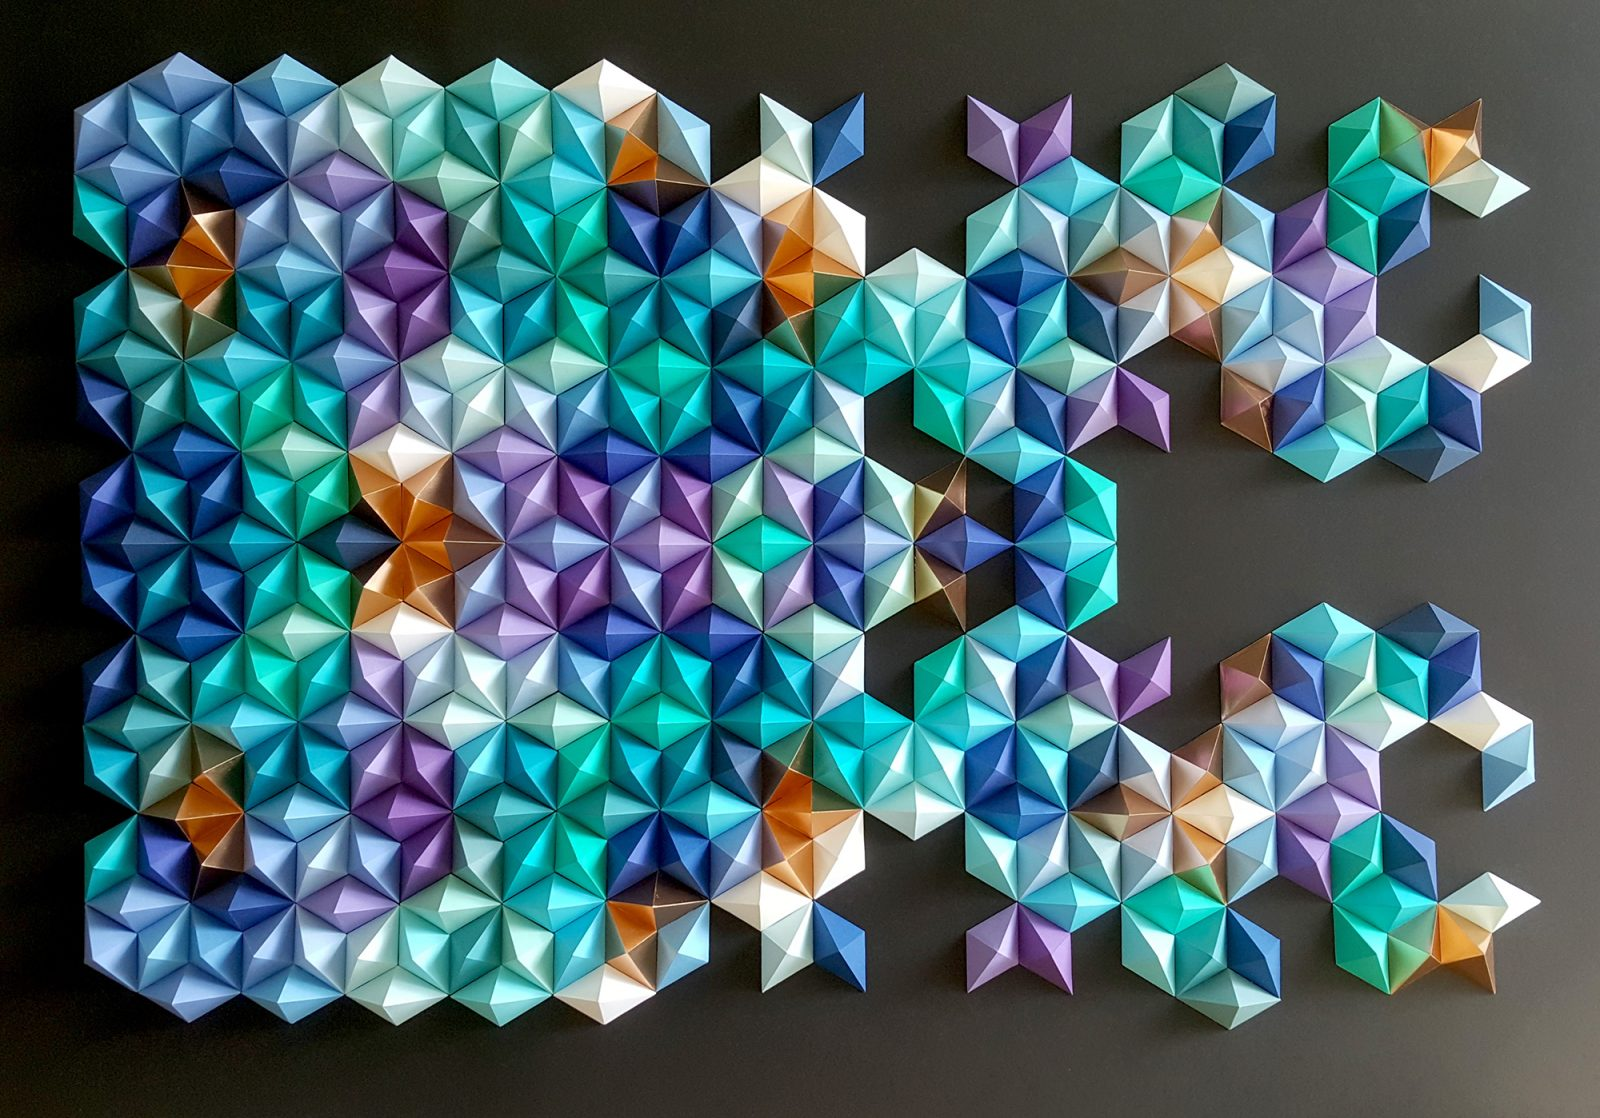 Paper Artist Zahra Ammar Loves the Versatility and Form Paper Offers